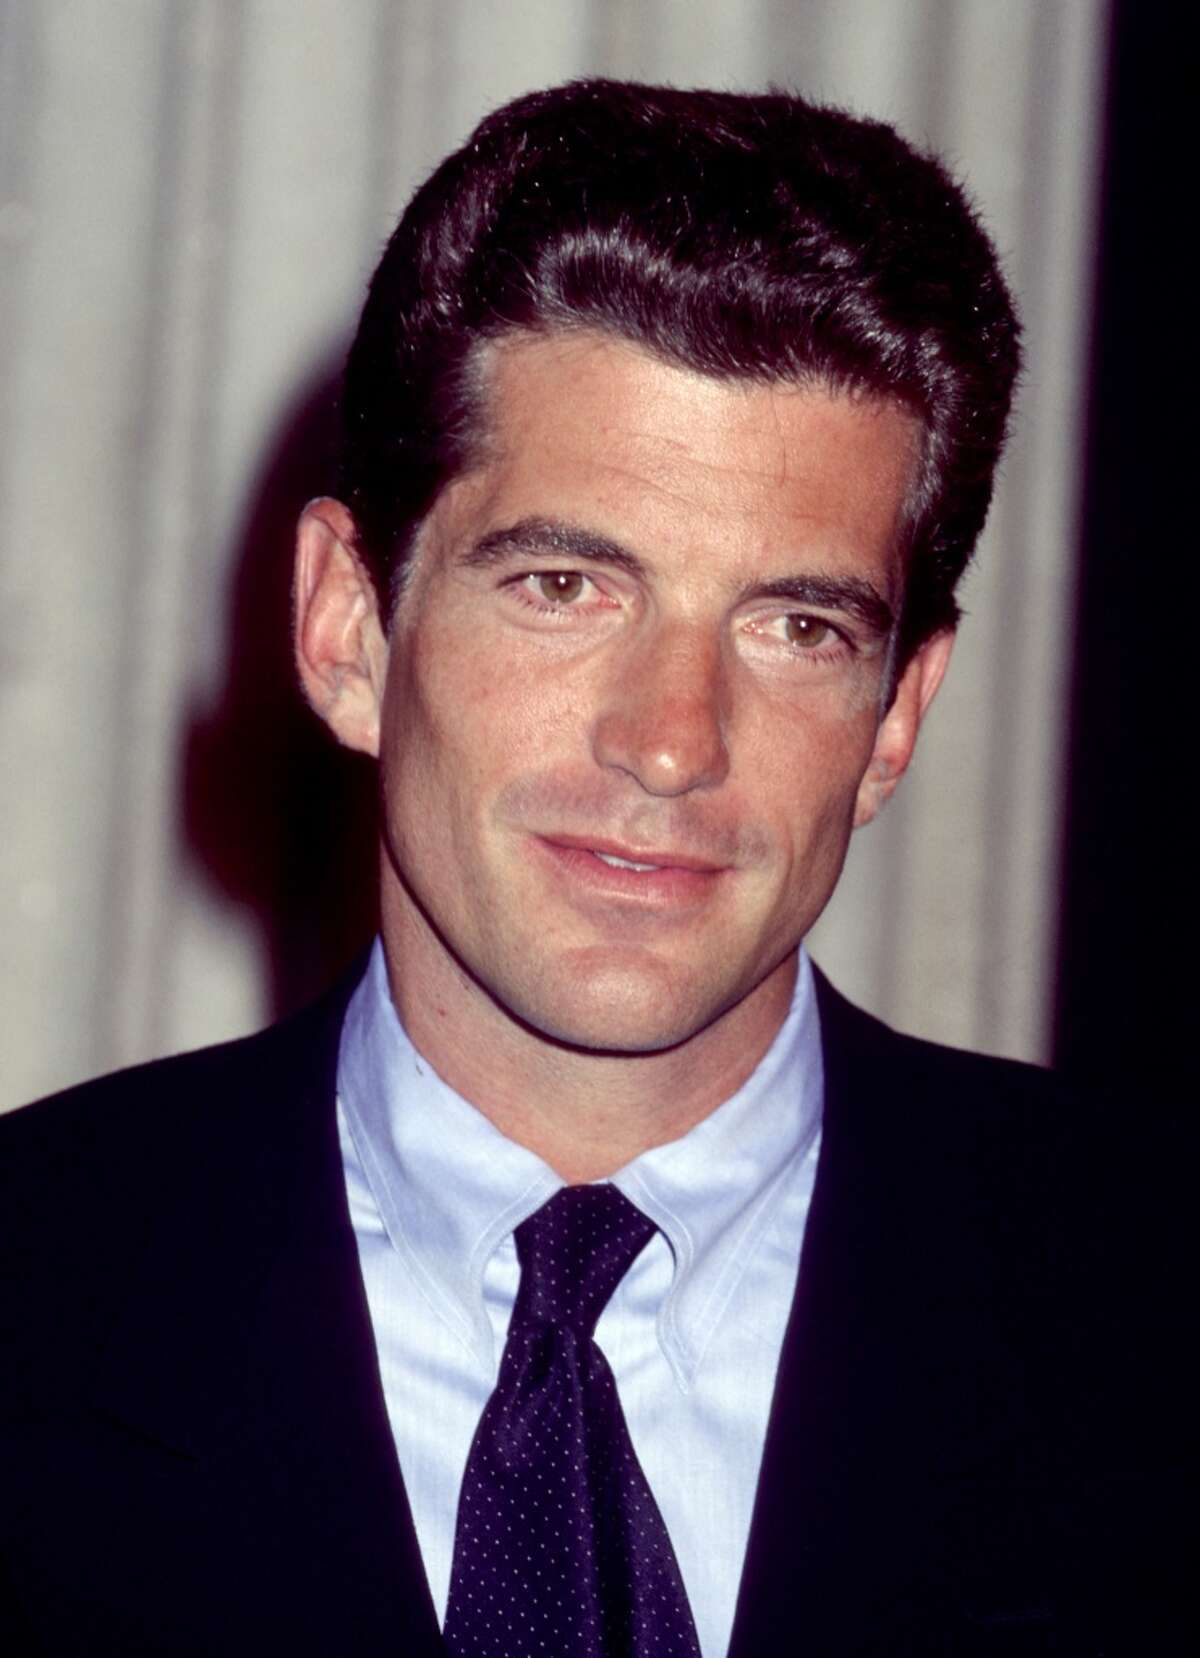 July 16, 1999: John F. Kennedy Jr. American lawyer, journalist, and magazine publisher died in plane crash over the Atlantic Ocean.